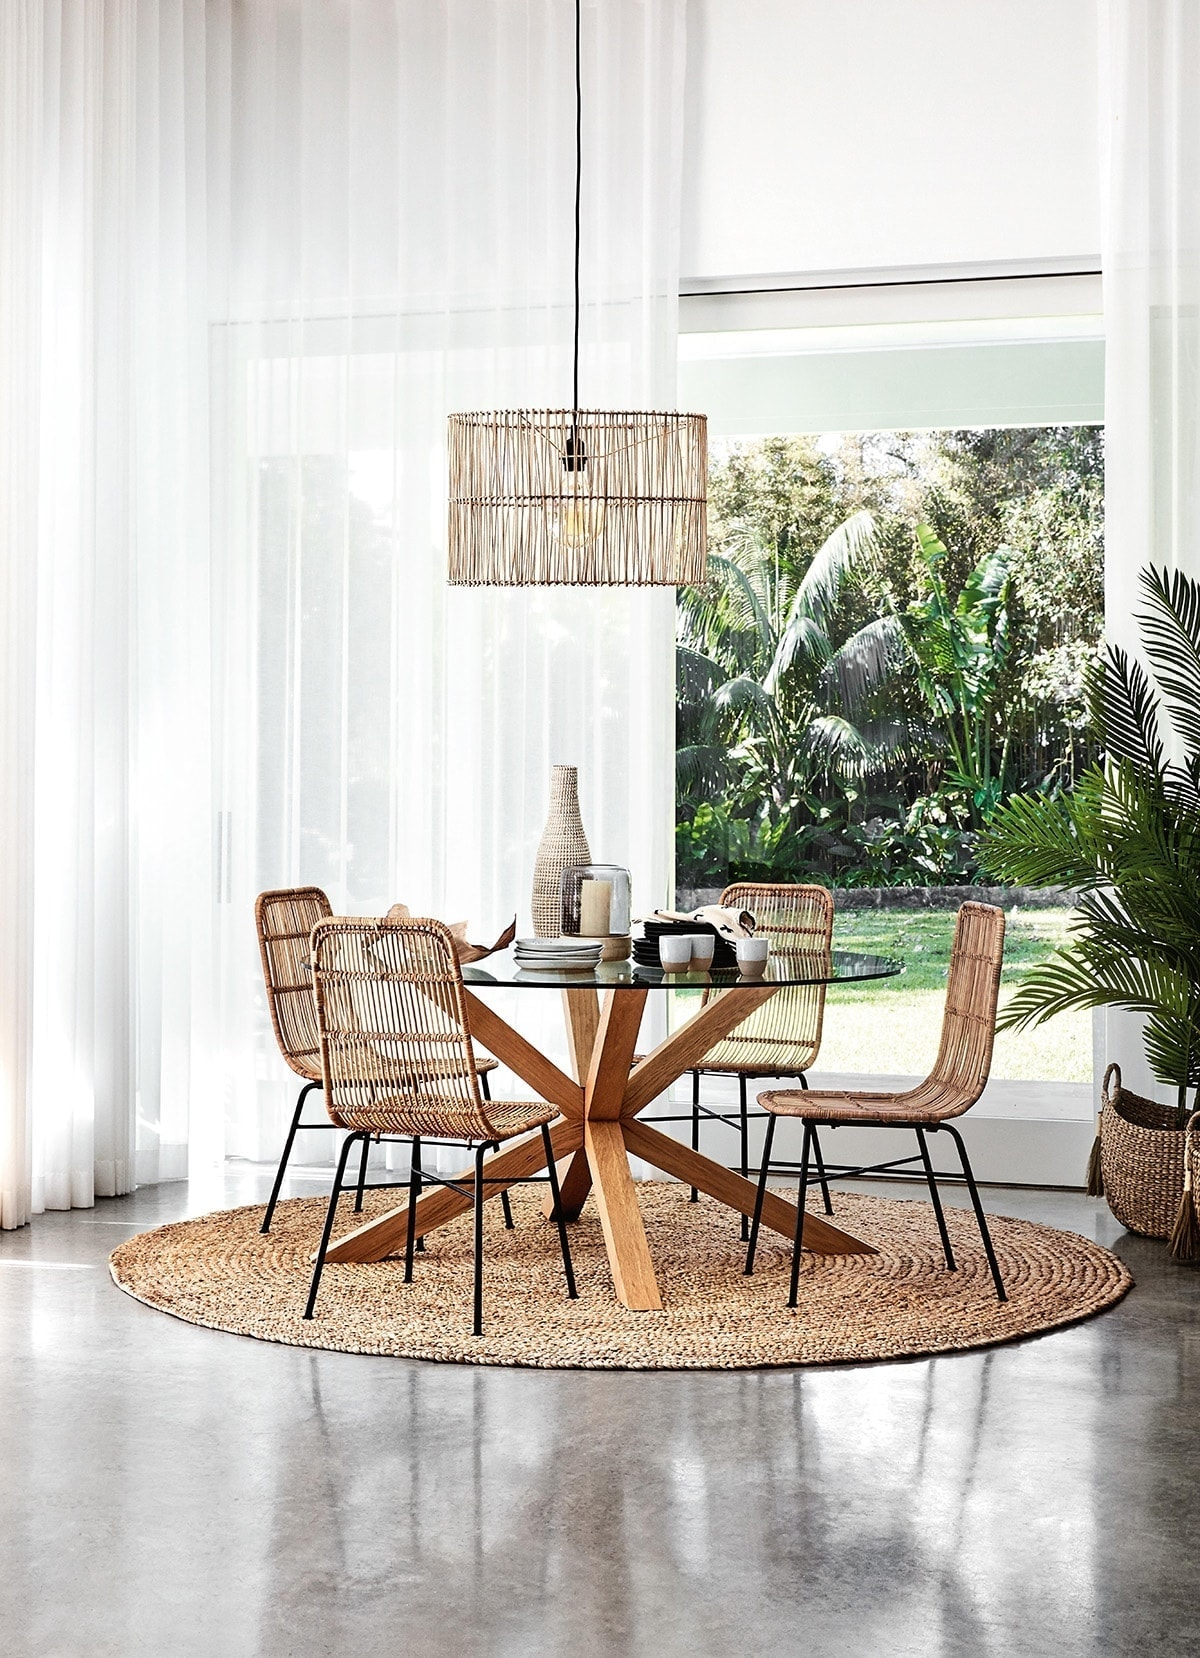 Round Jute Rug Under Glass Dining Table From Freedom With Coastal Chairs